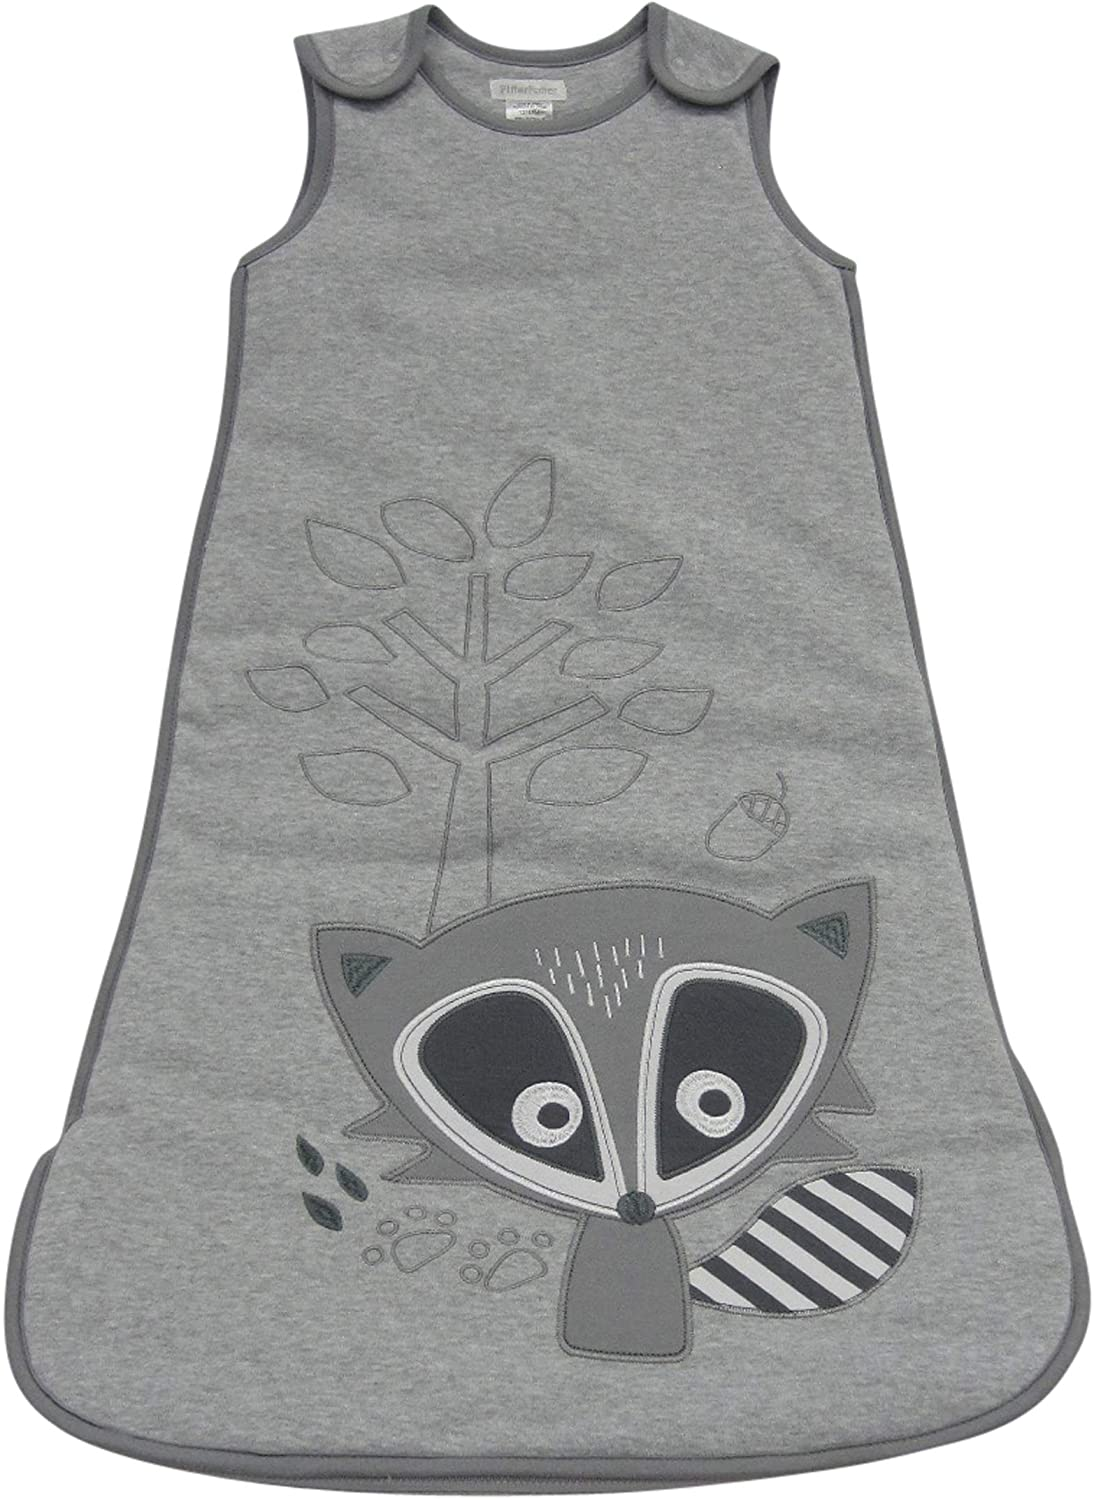 Pitter Patter 6-12 Months Sleeping Bag with Raccoon Embroidery 42061